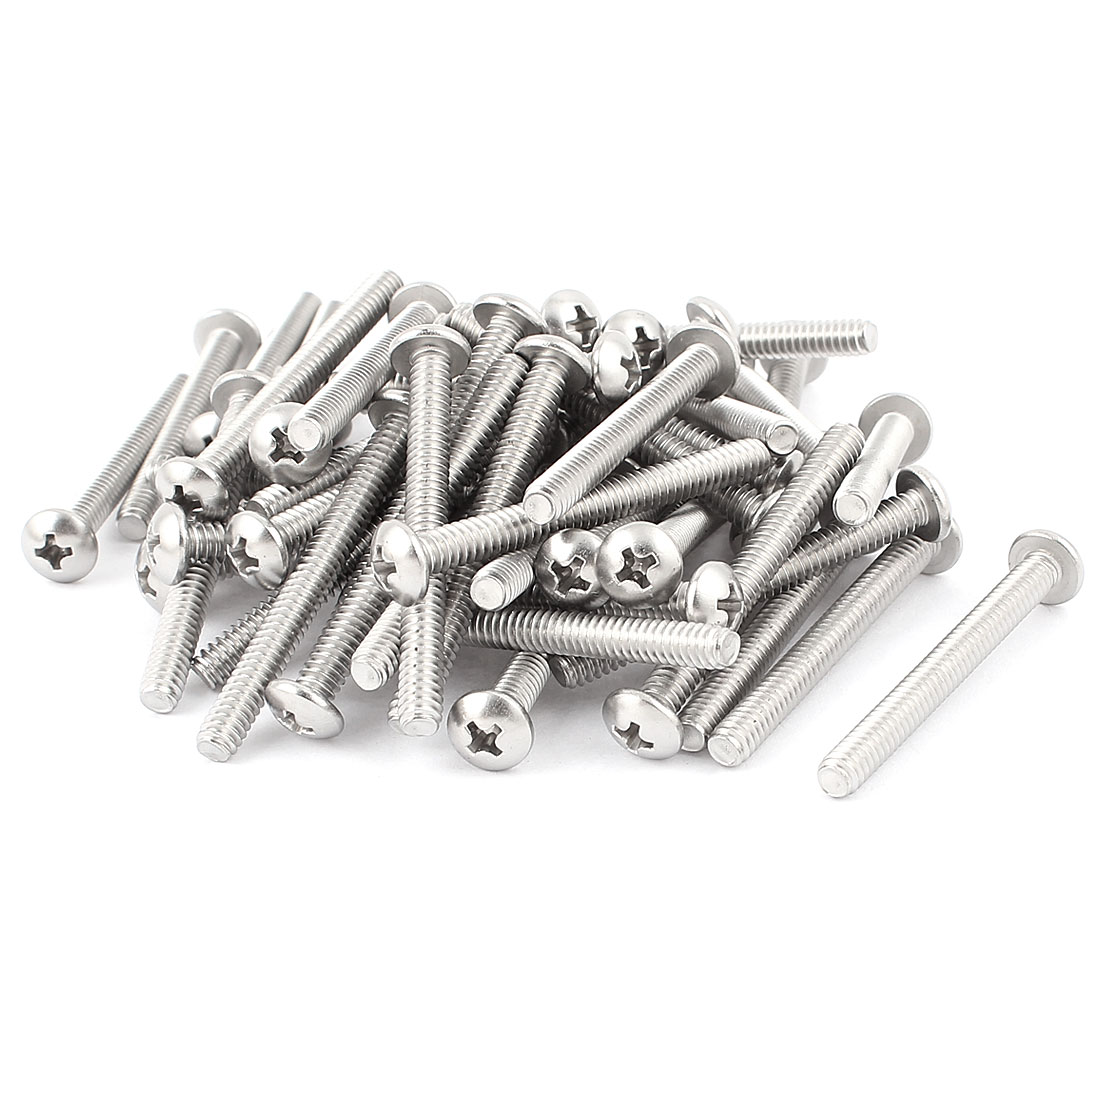 50 Pcs Stainless Steel Phillips Truss Head Machine Screws Bolts #10-24 x 1 7/8""